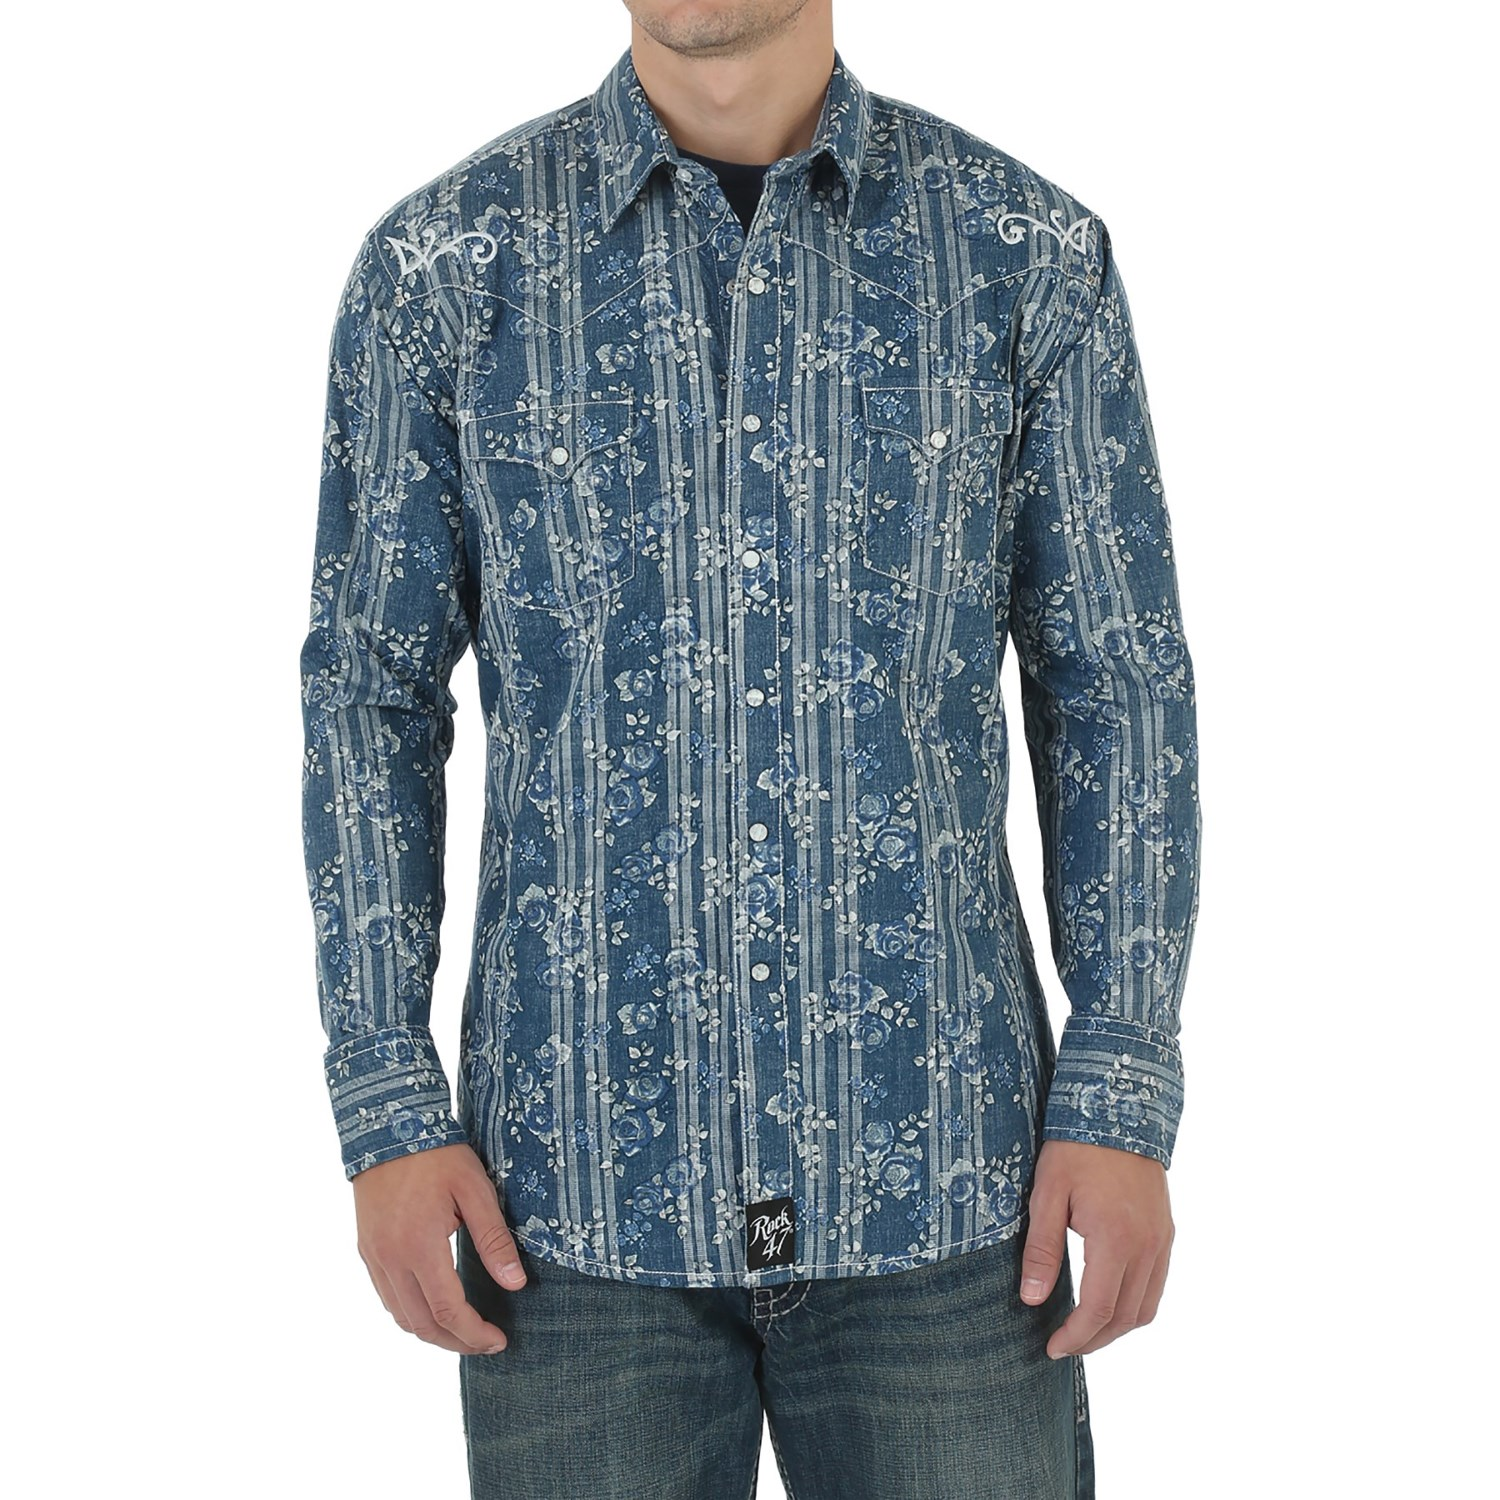 Pearl Snap Shirts For Men